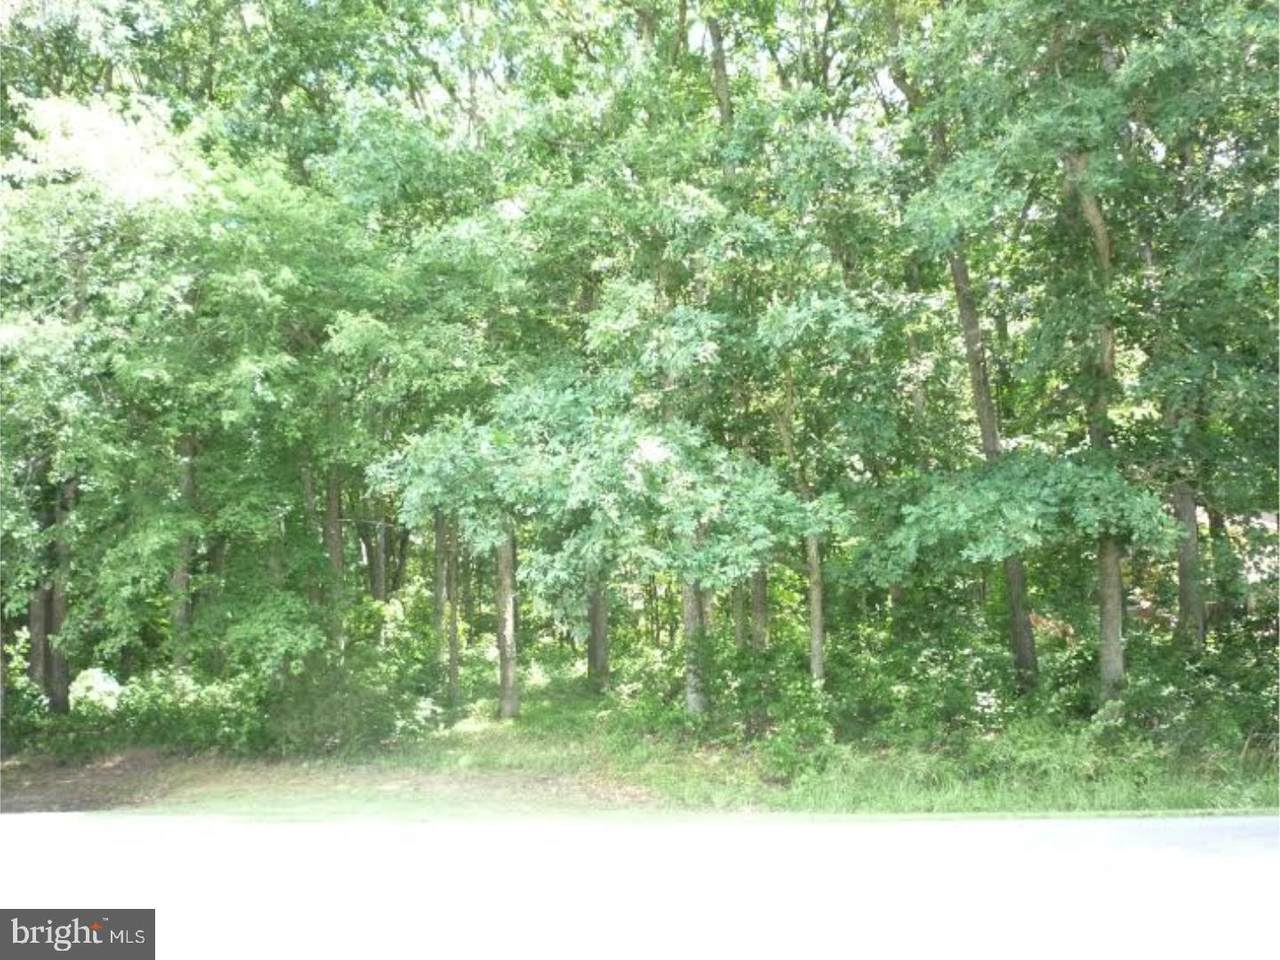 Lot 5 Big Ditch Road - Photo 1